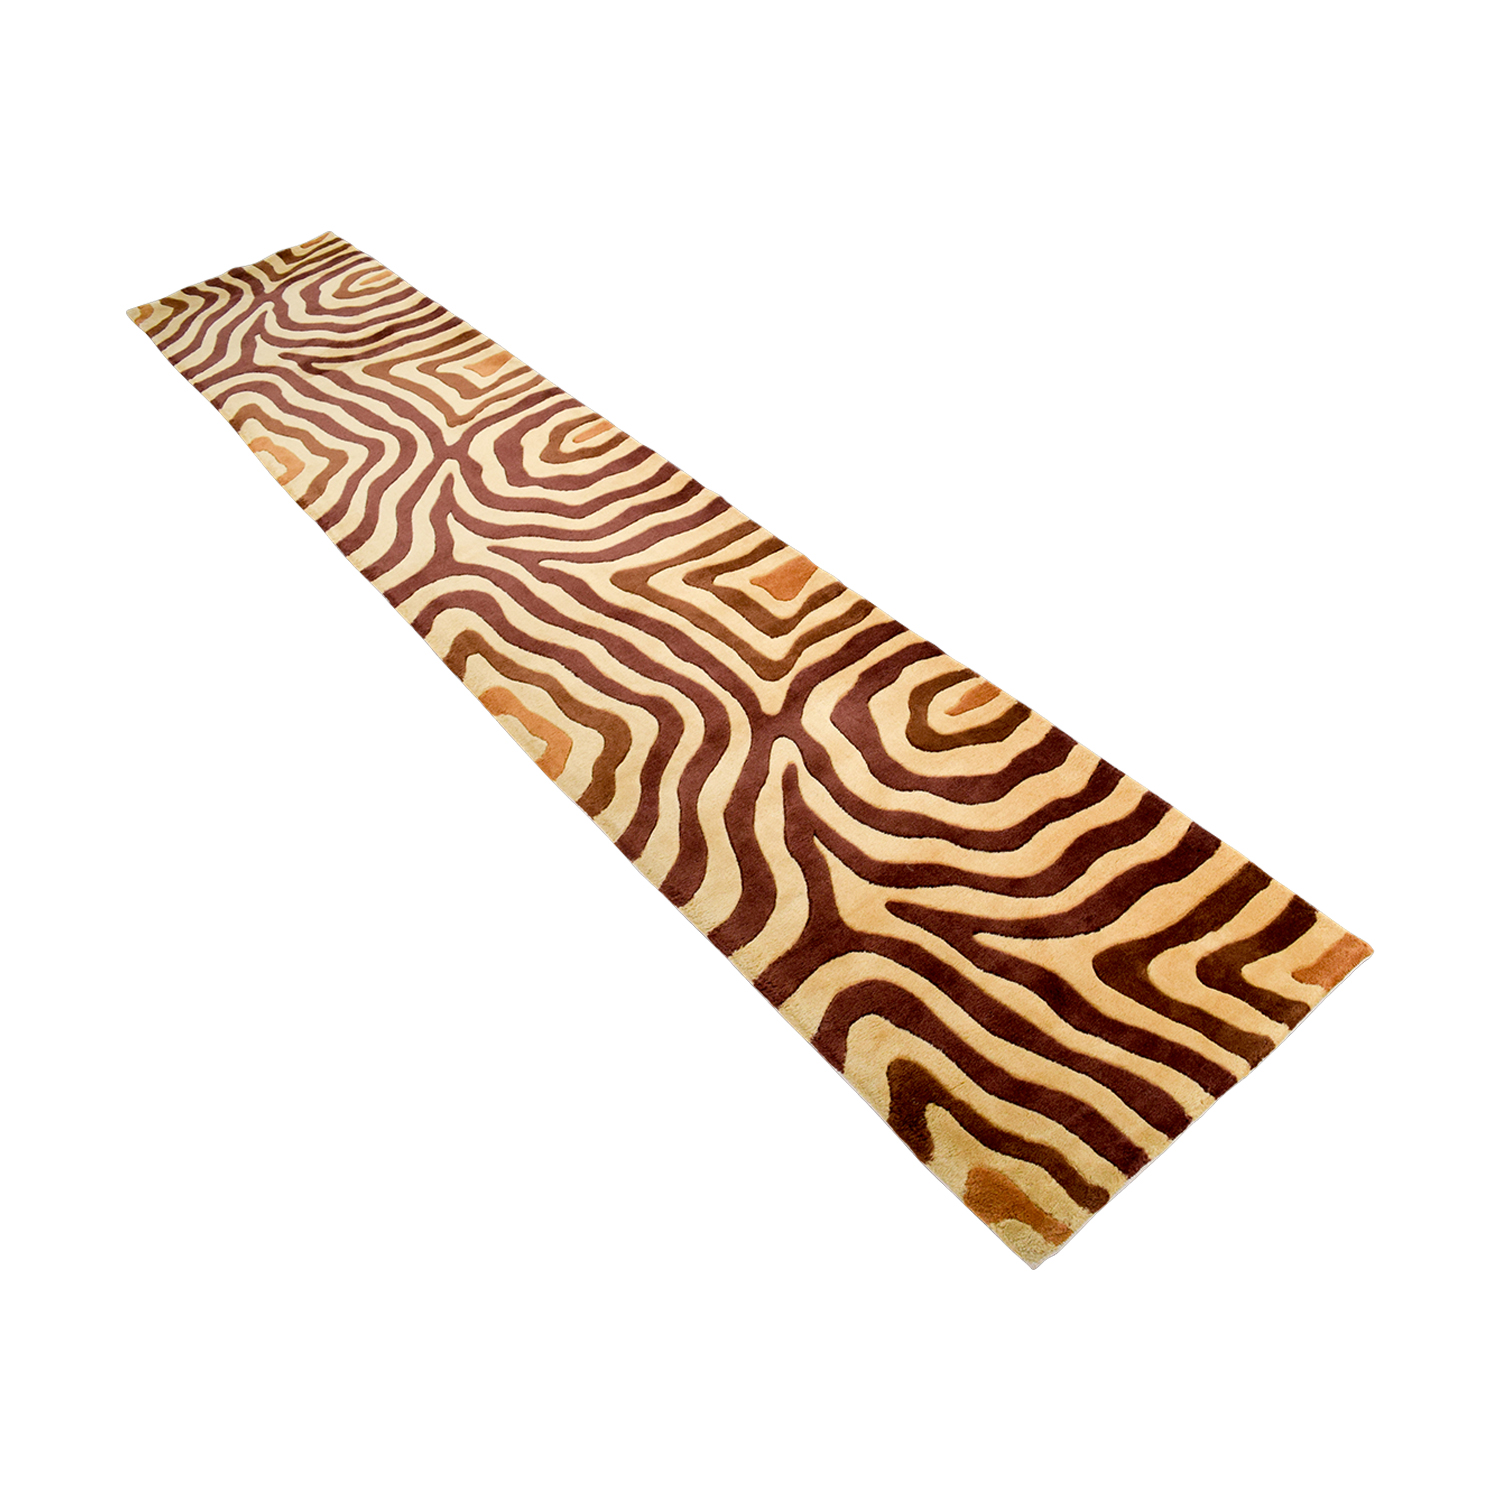 Tan and Brown Runner Rug for sale